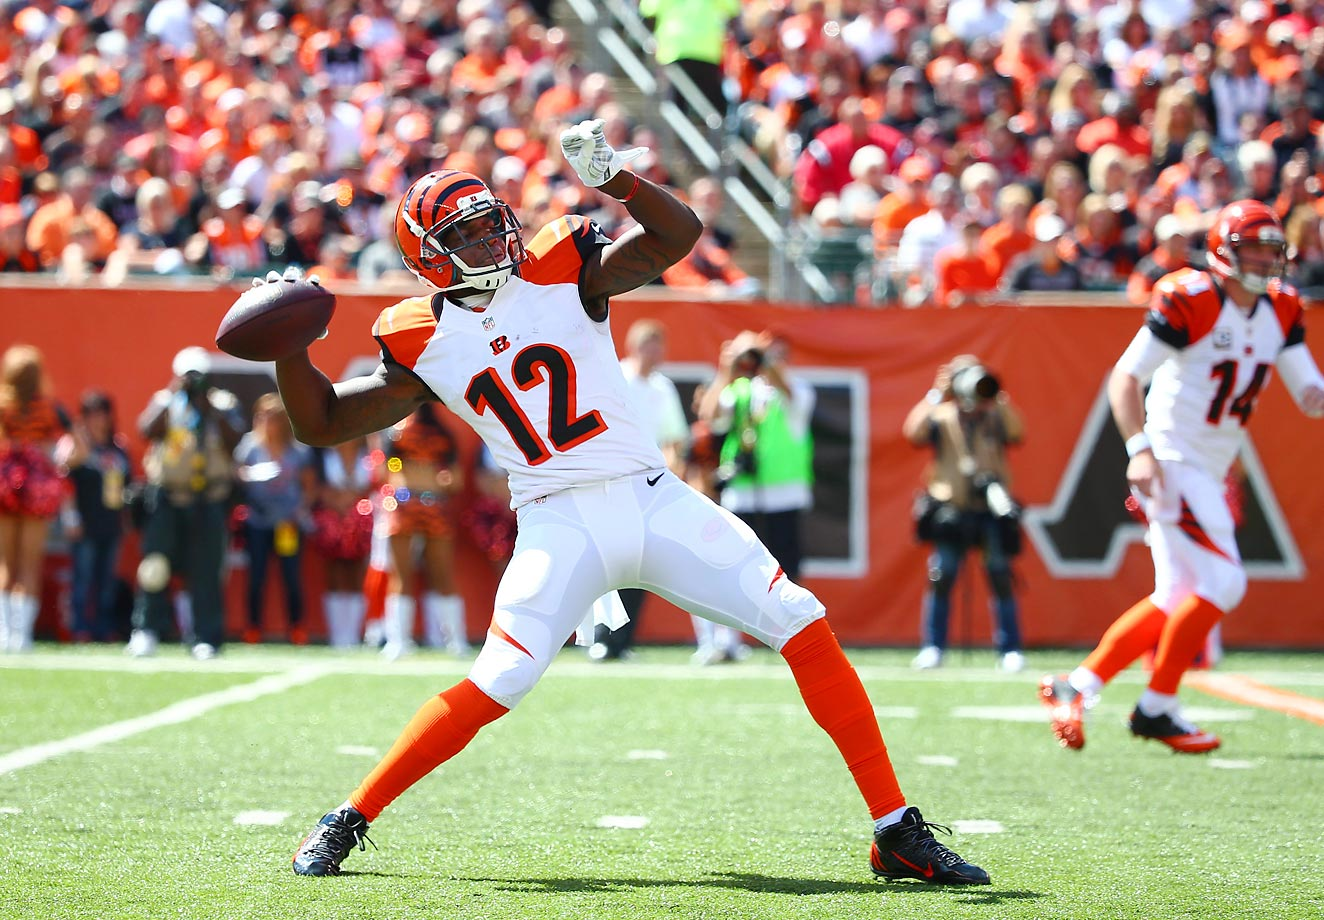 Mohamed Sanu could emerge as the go-to guy in Cincinnati's vertical offense if A.J. Green is going to miss an extended period. Sanu even threw a 50–yard pass on a trick play in Week 2.